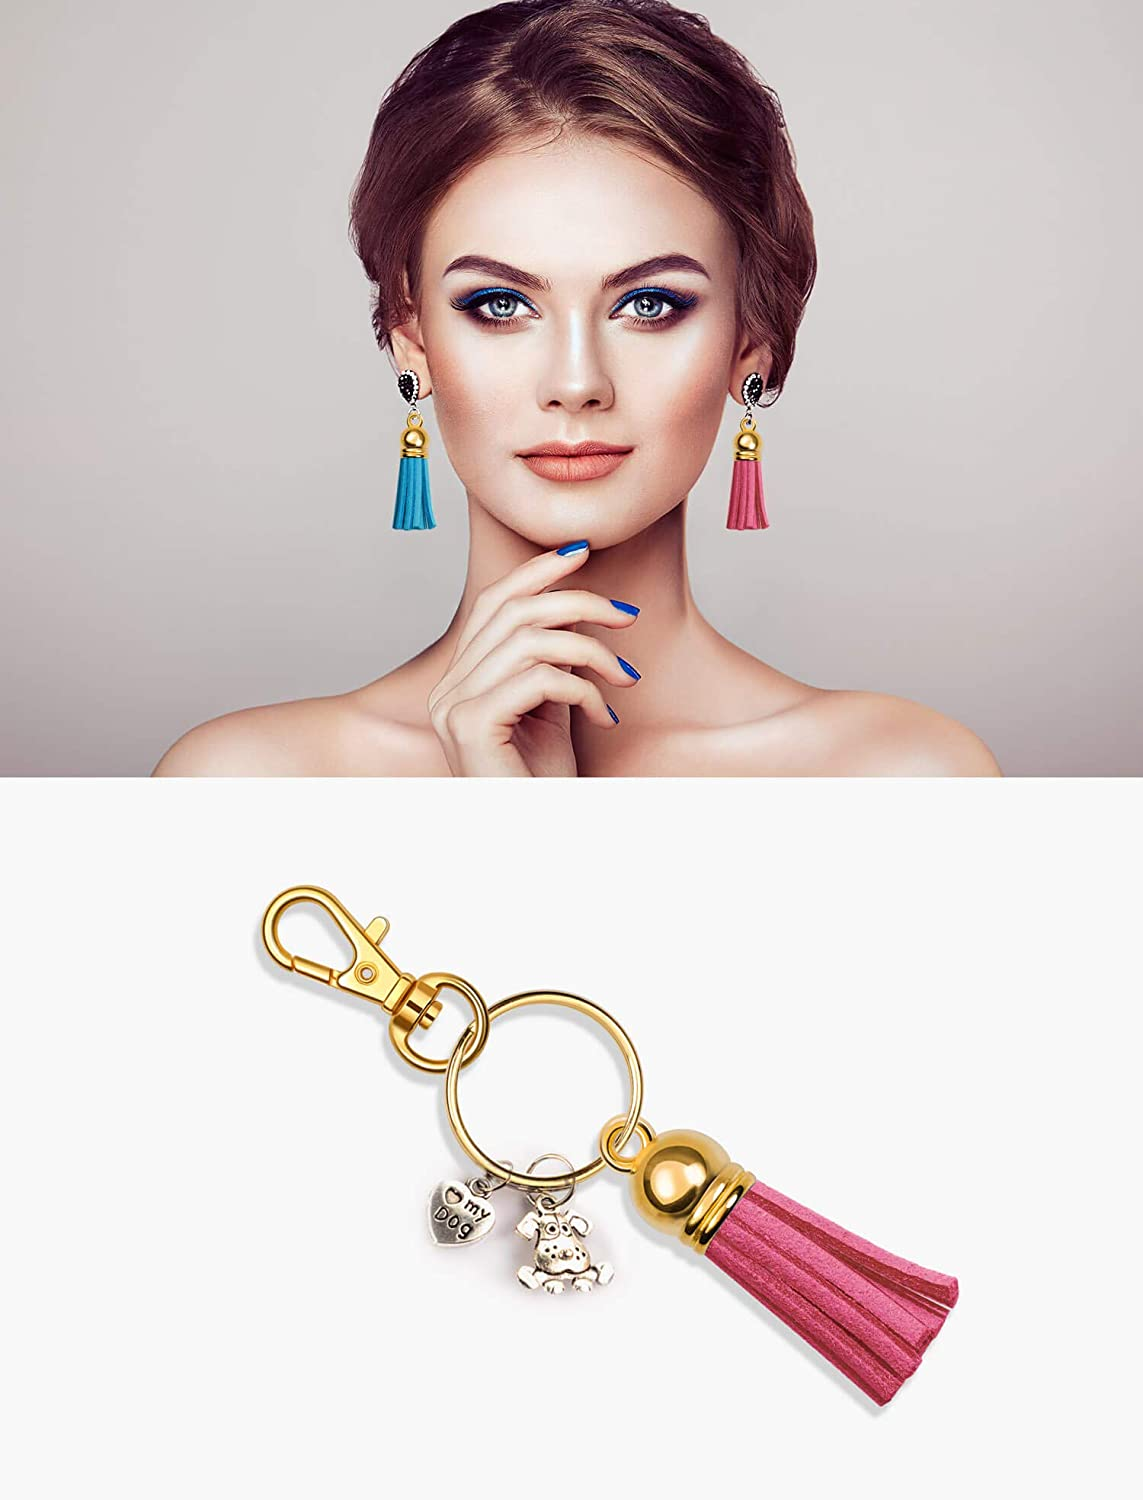 Shrinky Dinks and Crafts Gold Anezus 100Pcs Keychain Tassel Set Including 50Pcs Tassels Tassels for Crafts 25Pcs Lobster Clasp Keychain and 25Pcs Keychain Rings Bulk for Acrylic Blank Keychains